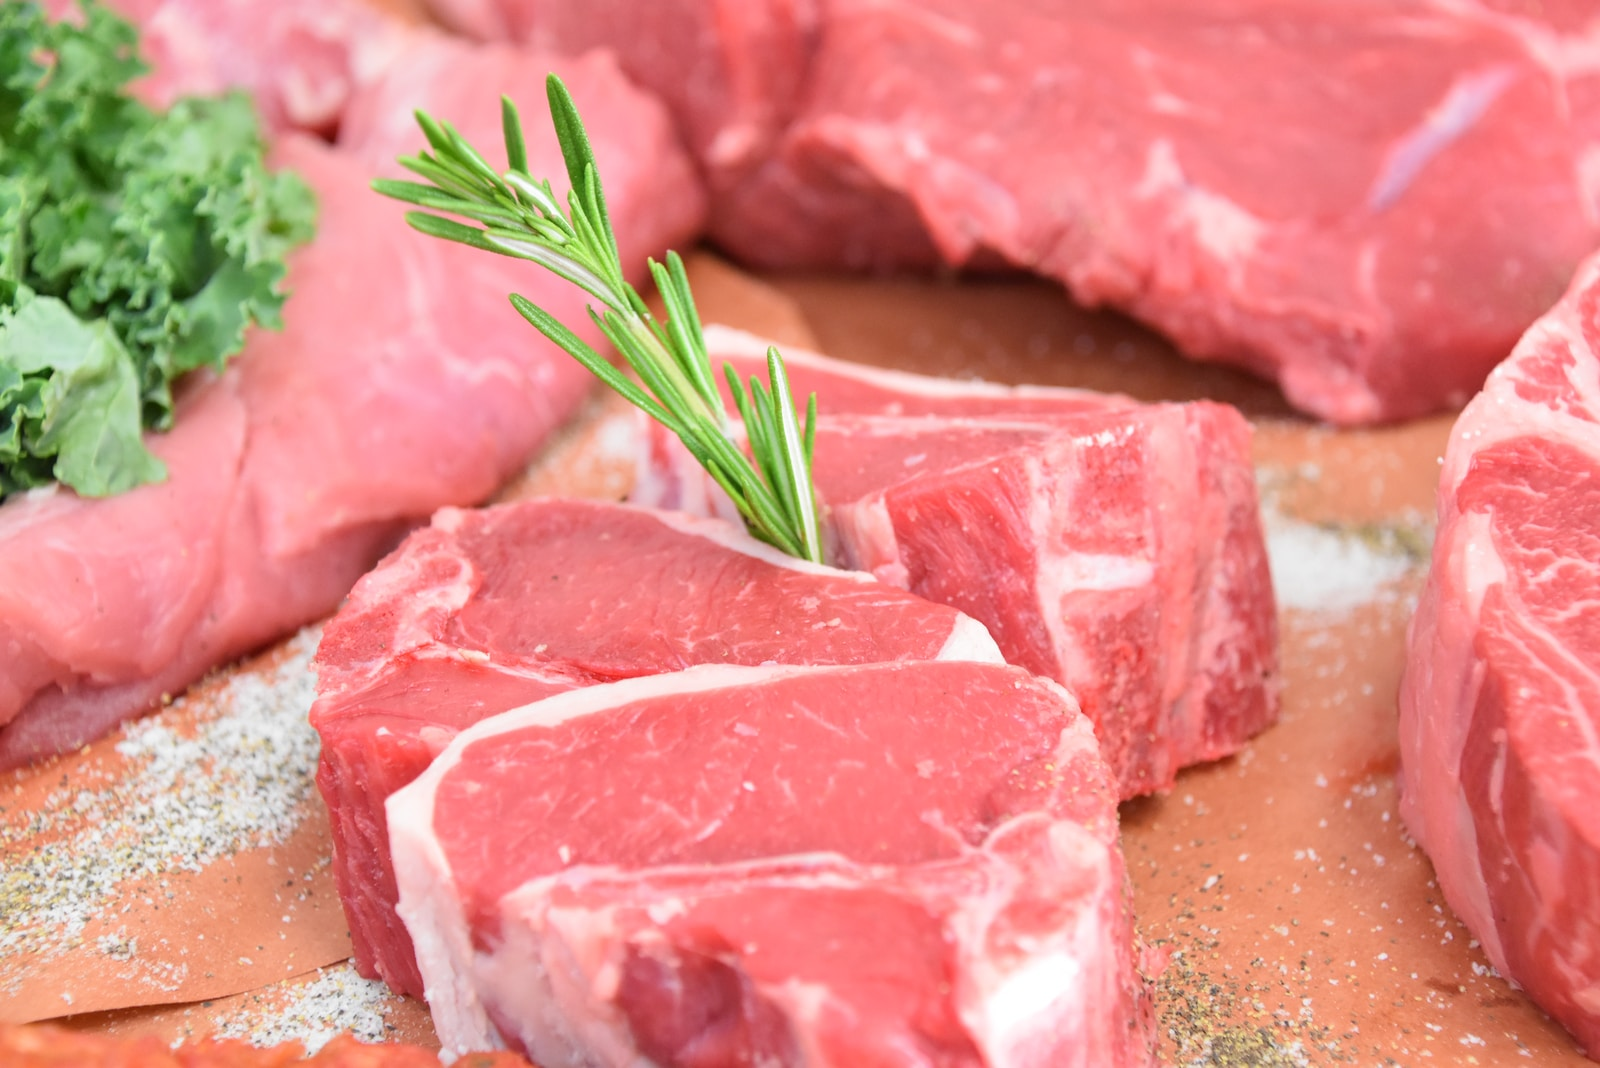 raw meat with green leaves